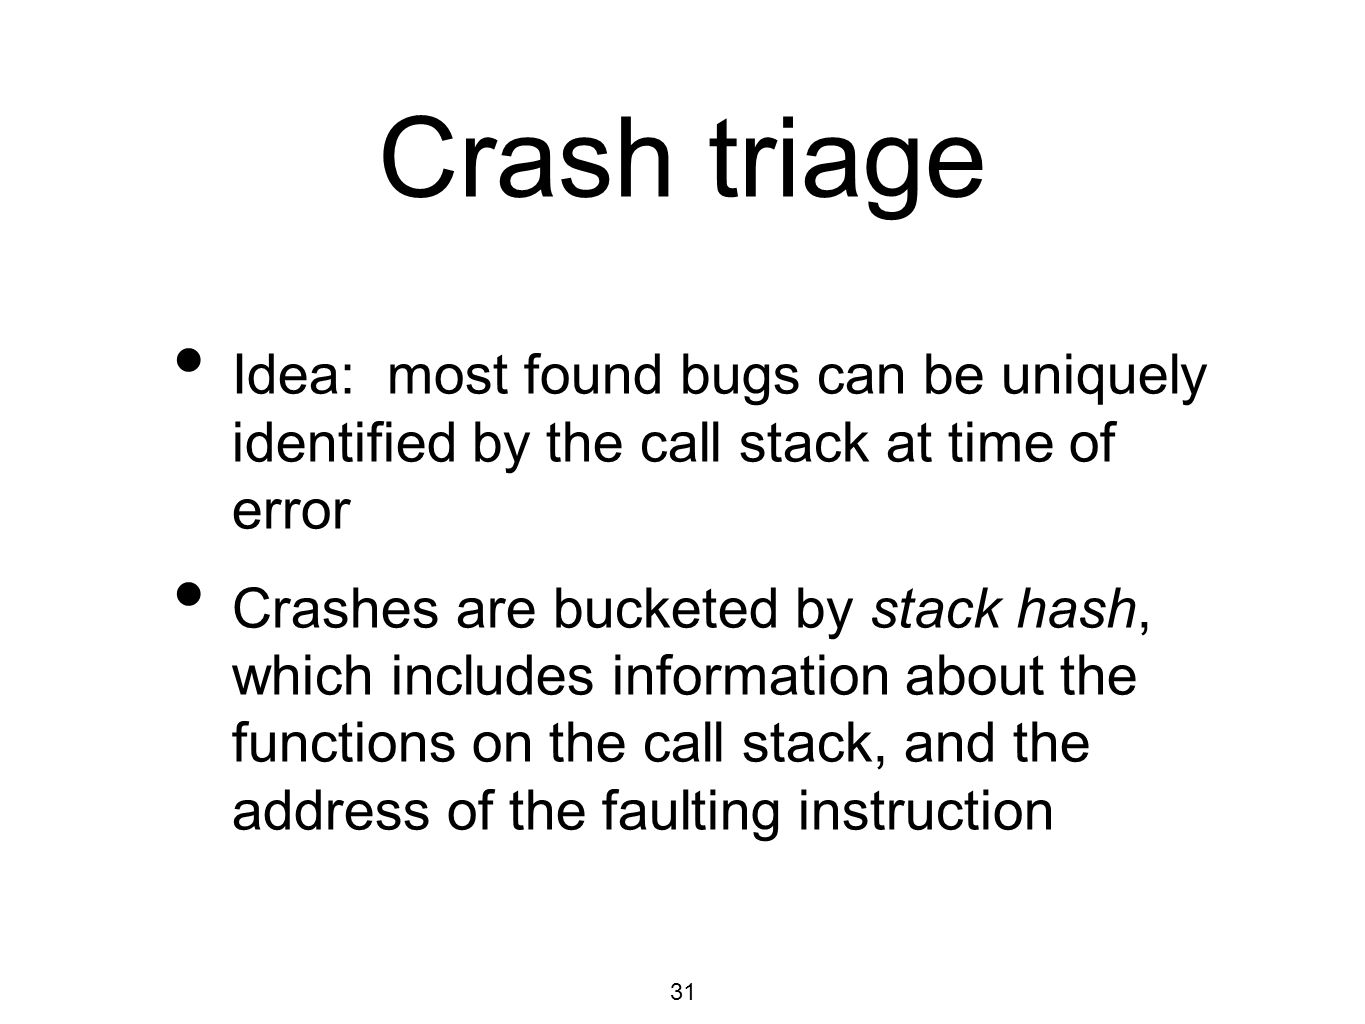 31 Crash triage Idea: most found bugs can be uniquely identified by the call stack at time of error Crashes are bucketed by stack hash, which includes information about the functions on the call stack, and the address of the faulting instruction